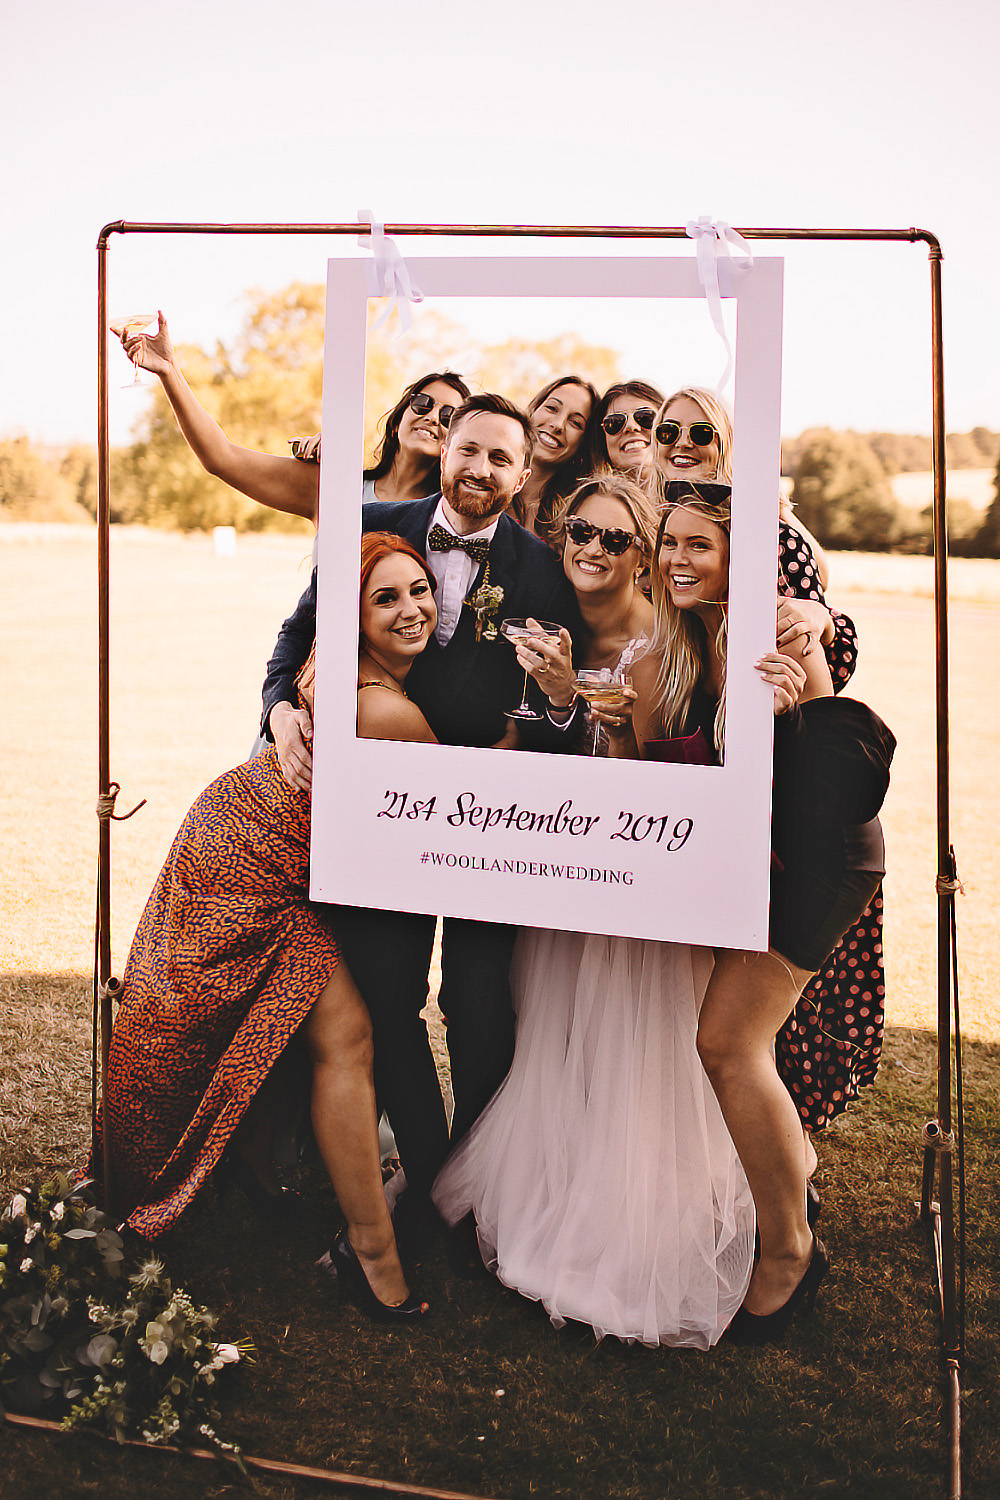 Photo Booth Cardboard Cut Out Suffolk Barn Wedding Carrie Lavers Photography